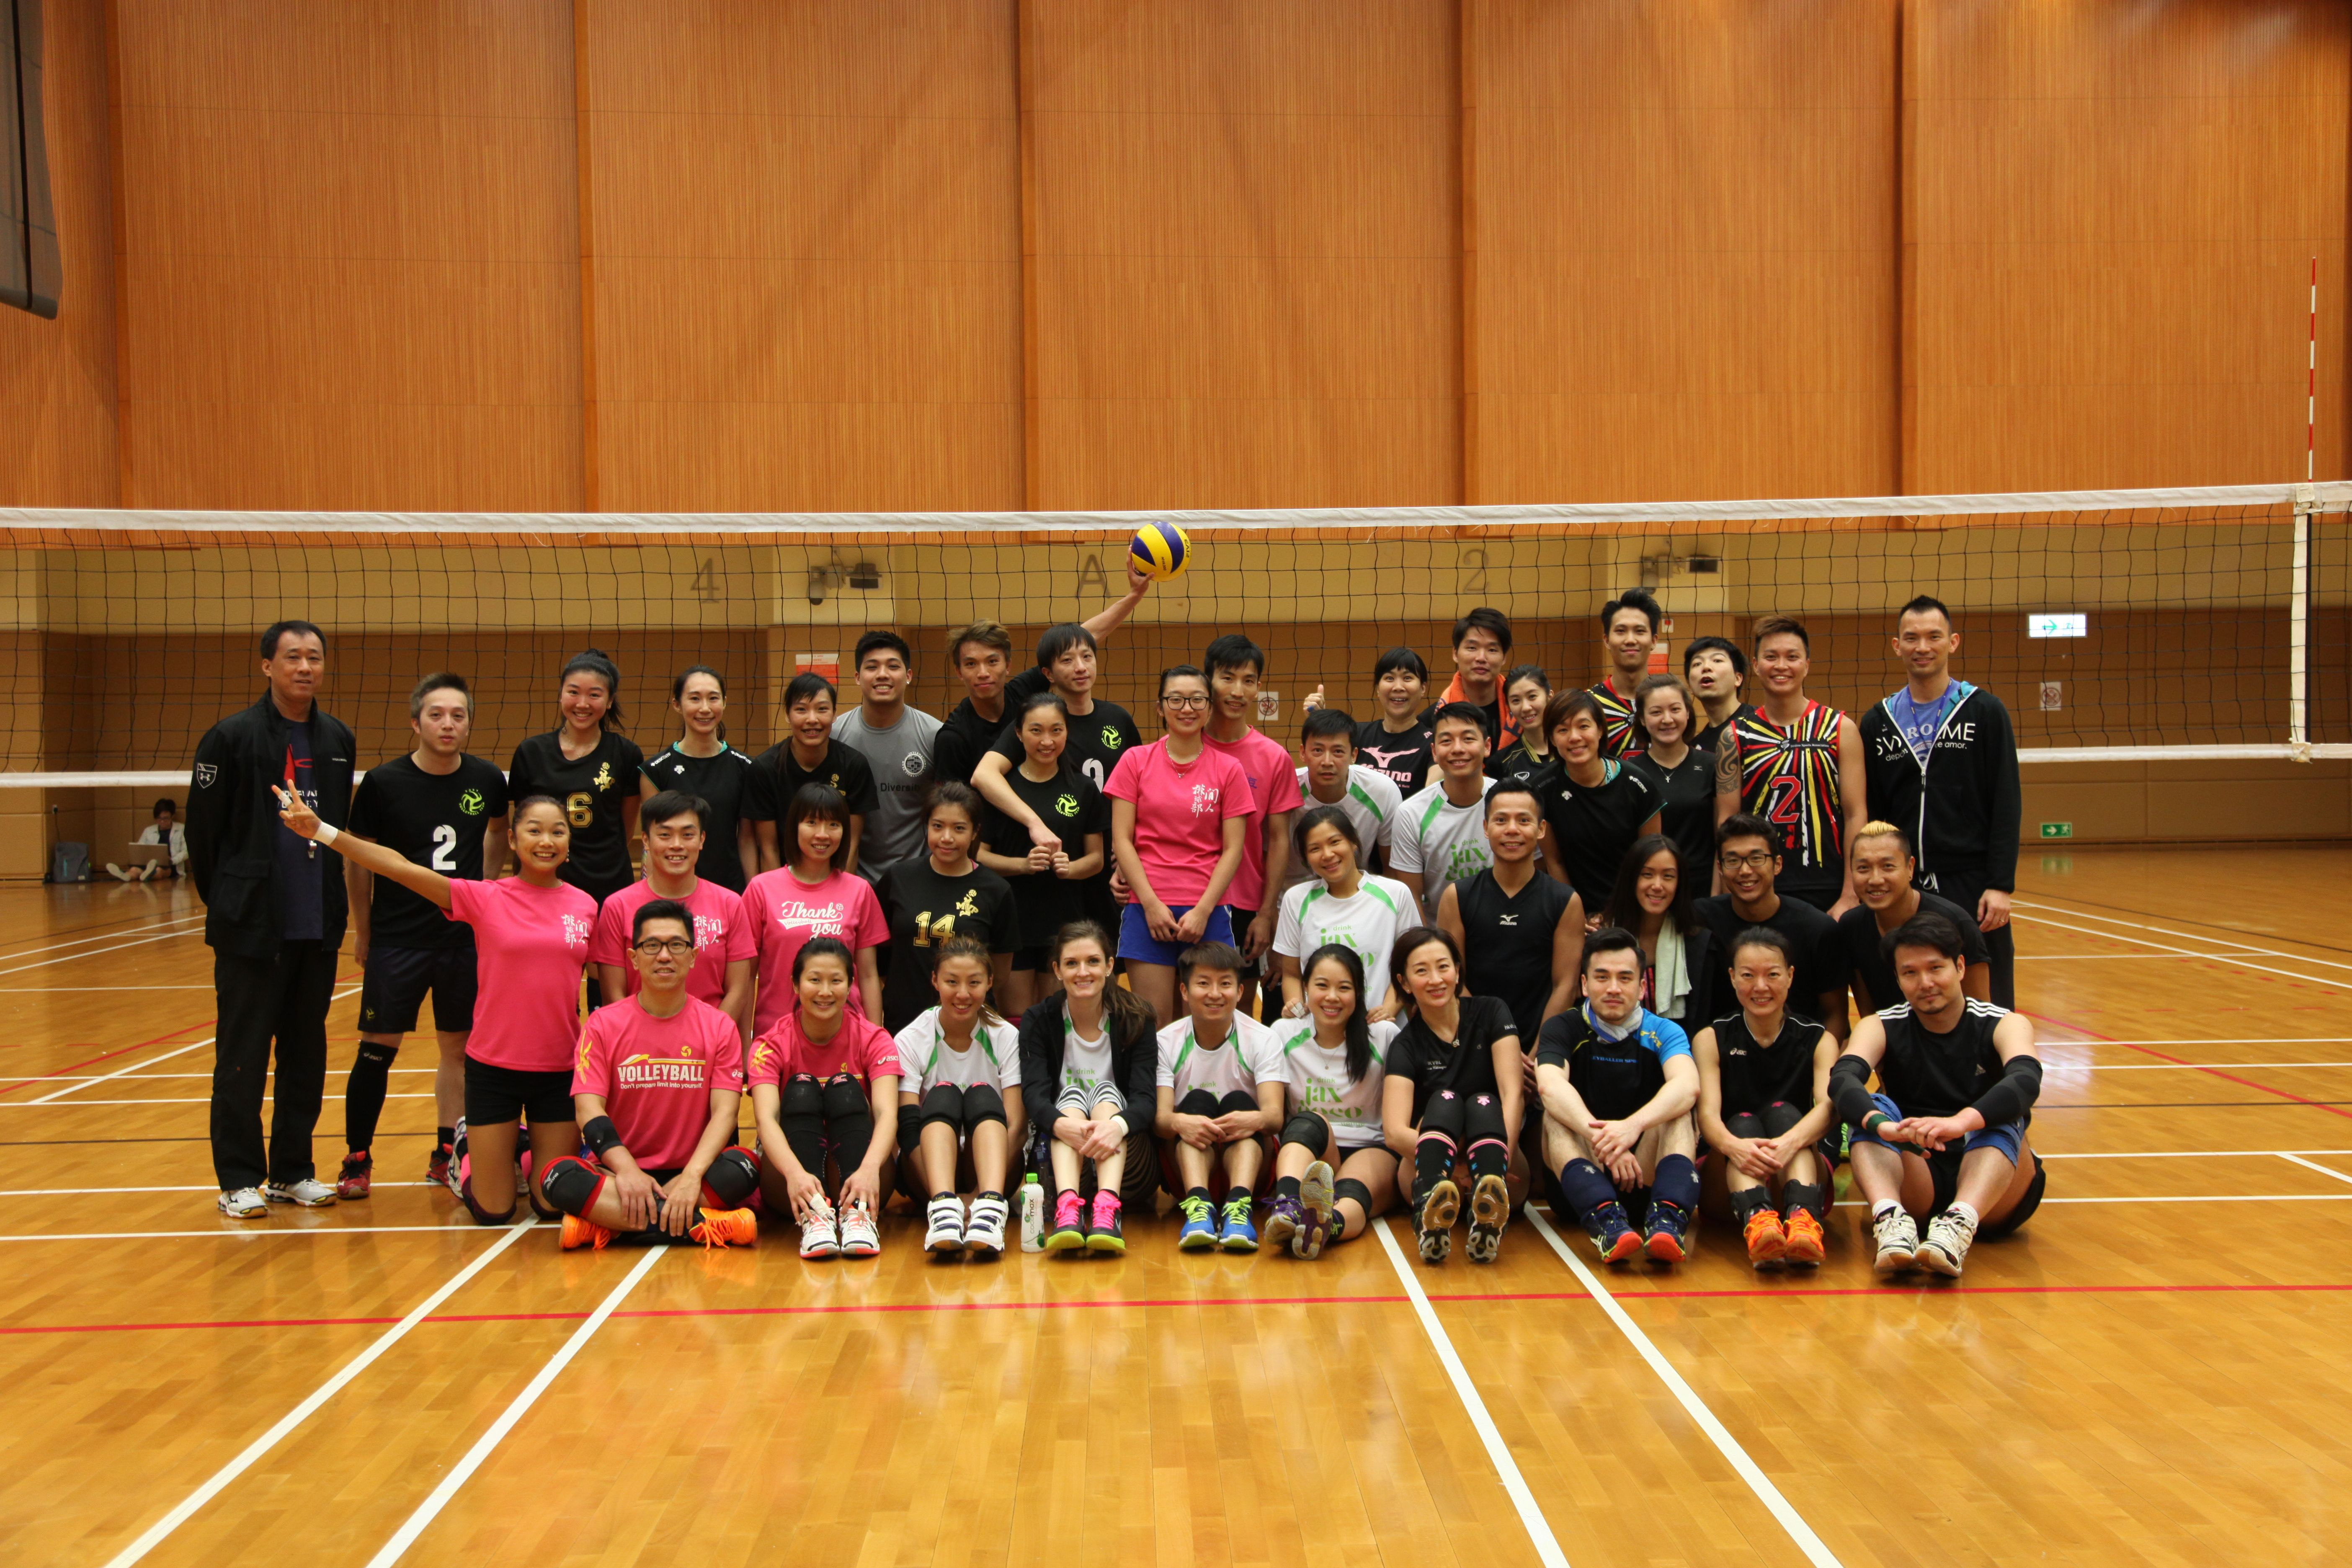 IVB.hk - Indoor Volleyball hk